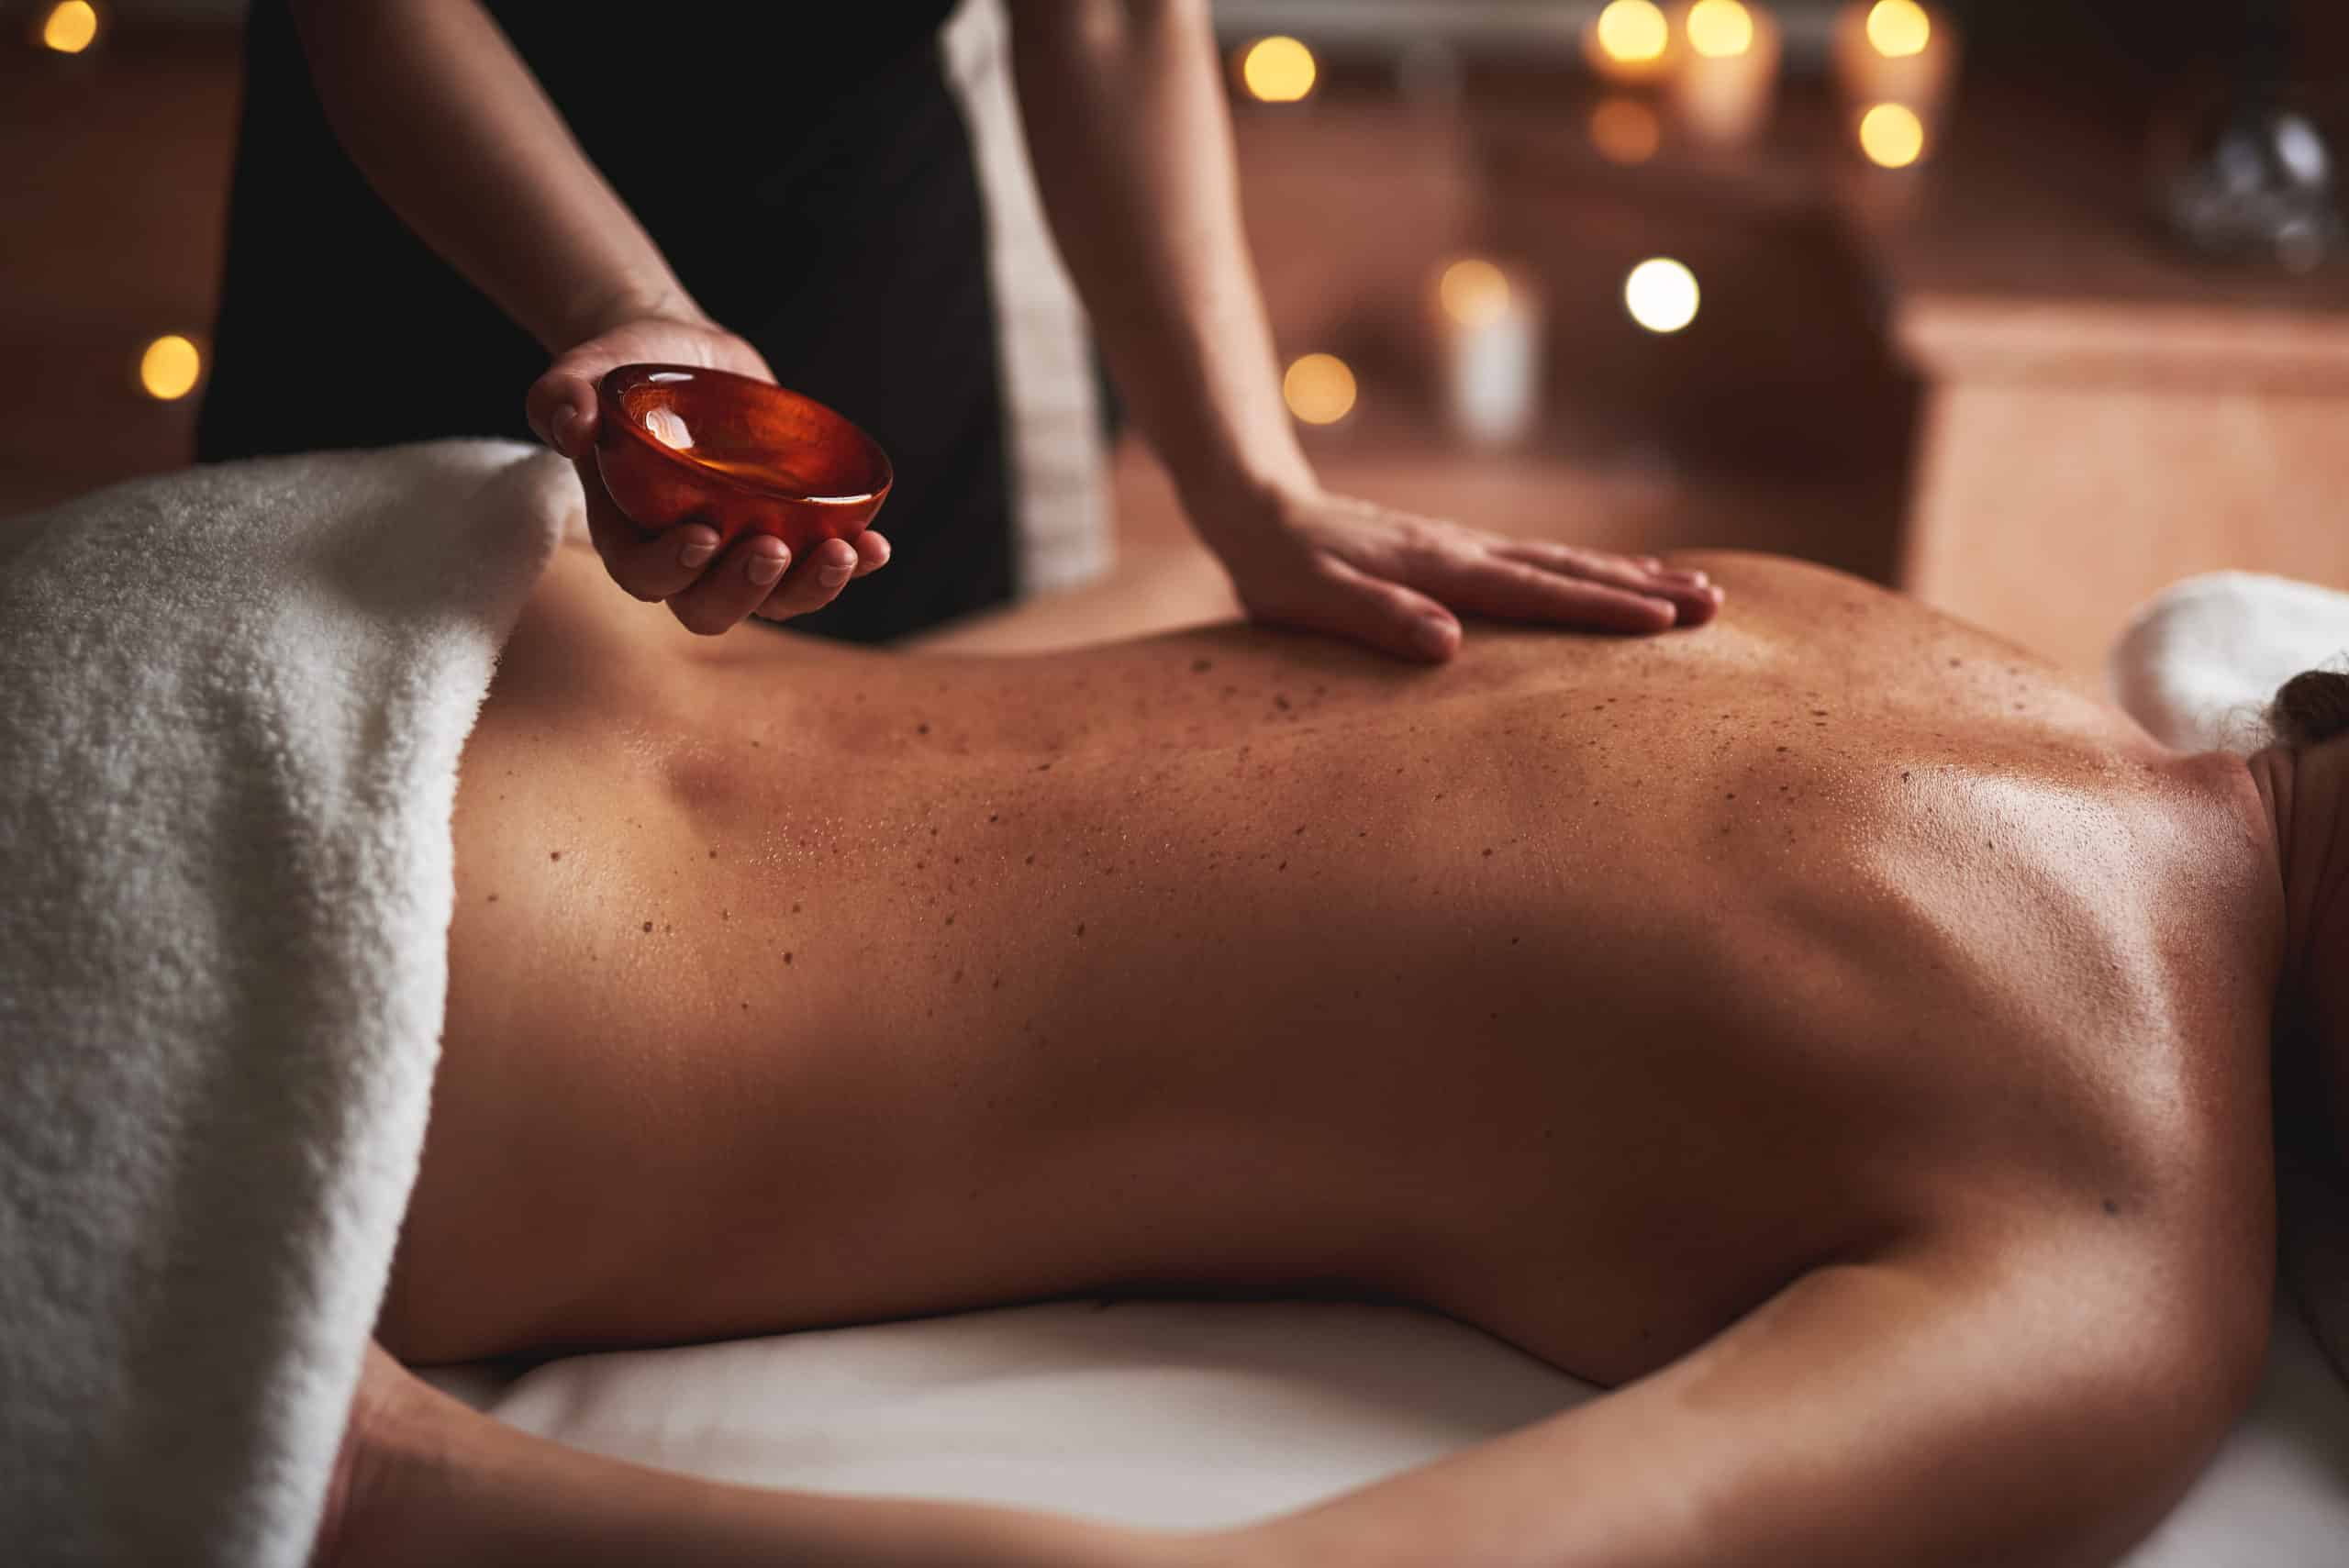 Concept of relaxation and body care. Young lady having relaxing massage in spa salon with essential oils making by female therapist